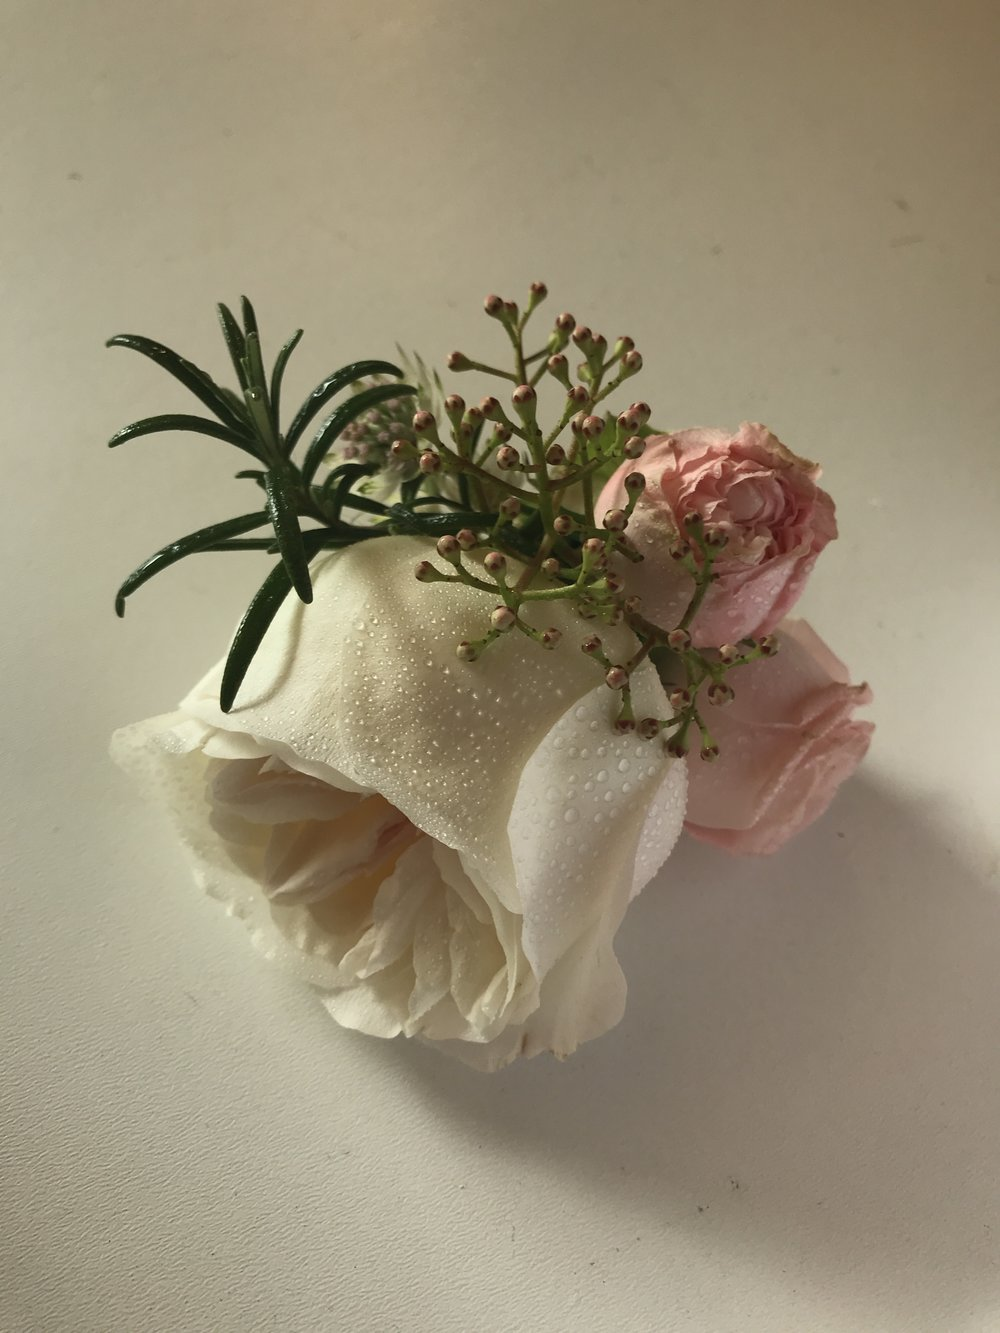 David Austin Keira Rose, Bombastic & Rosemary made up this stunning buttonhole.